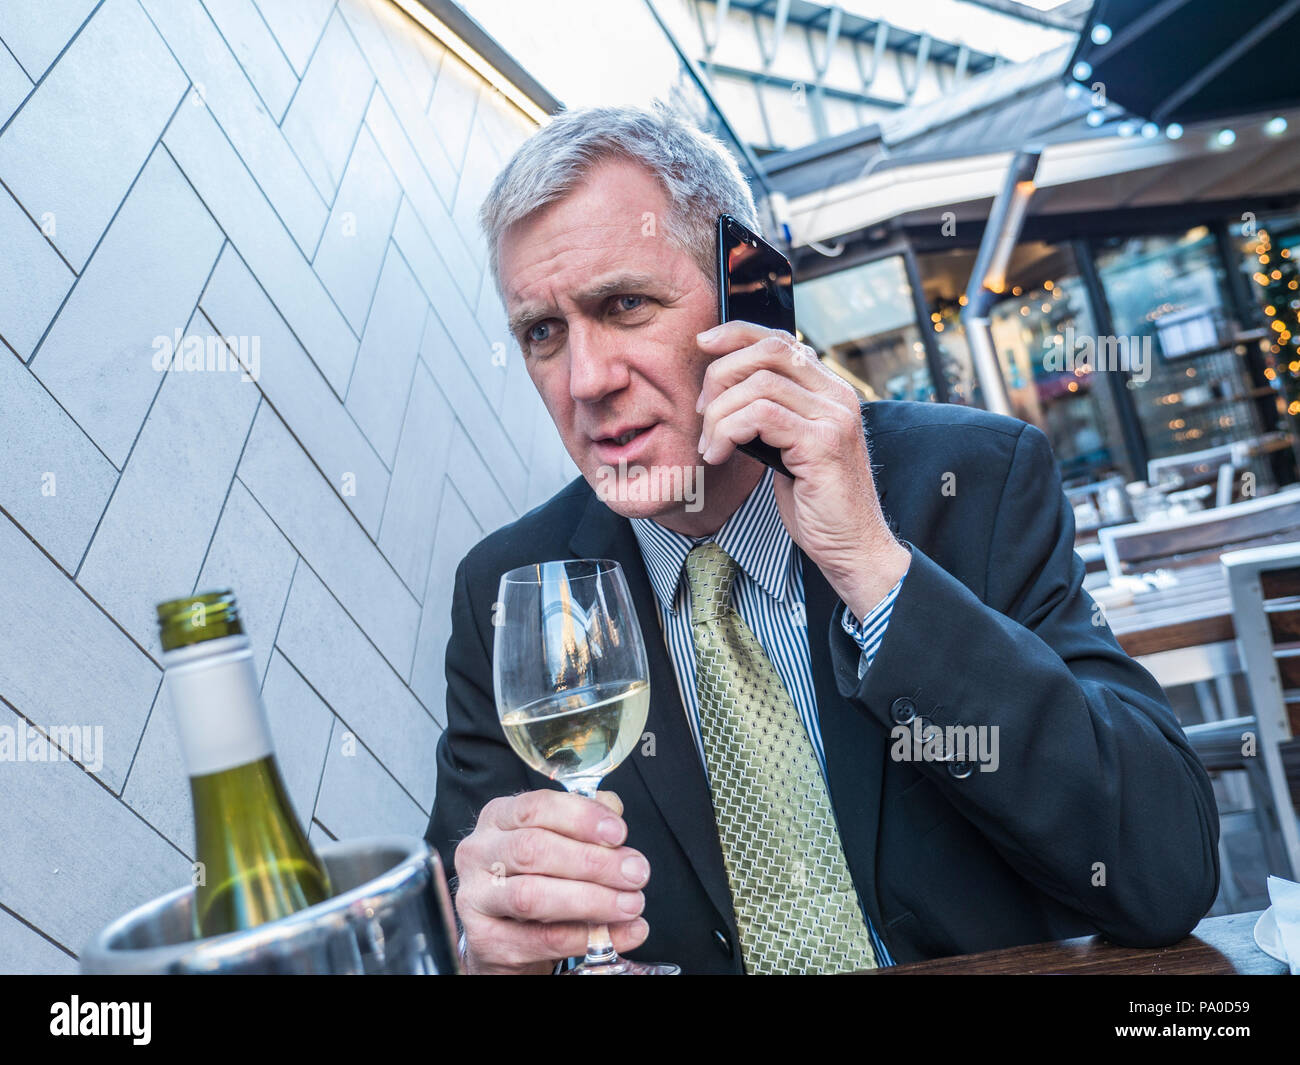 Mature city executive businessman, looking worried listening on his iPhone 7 plus mobile telephone at alfresco restaurant holding glass of white wine - Stock Image